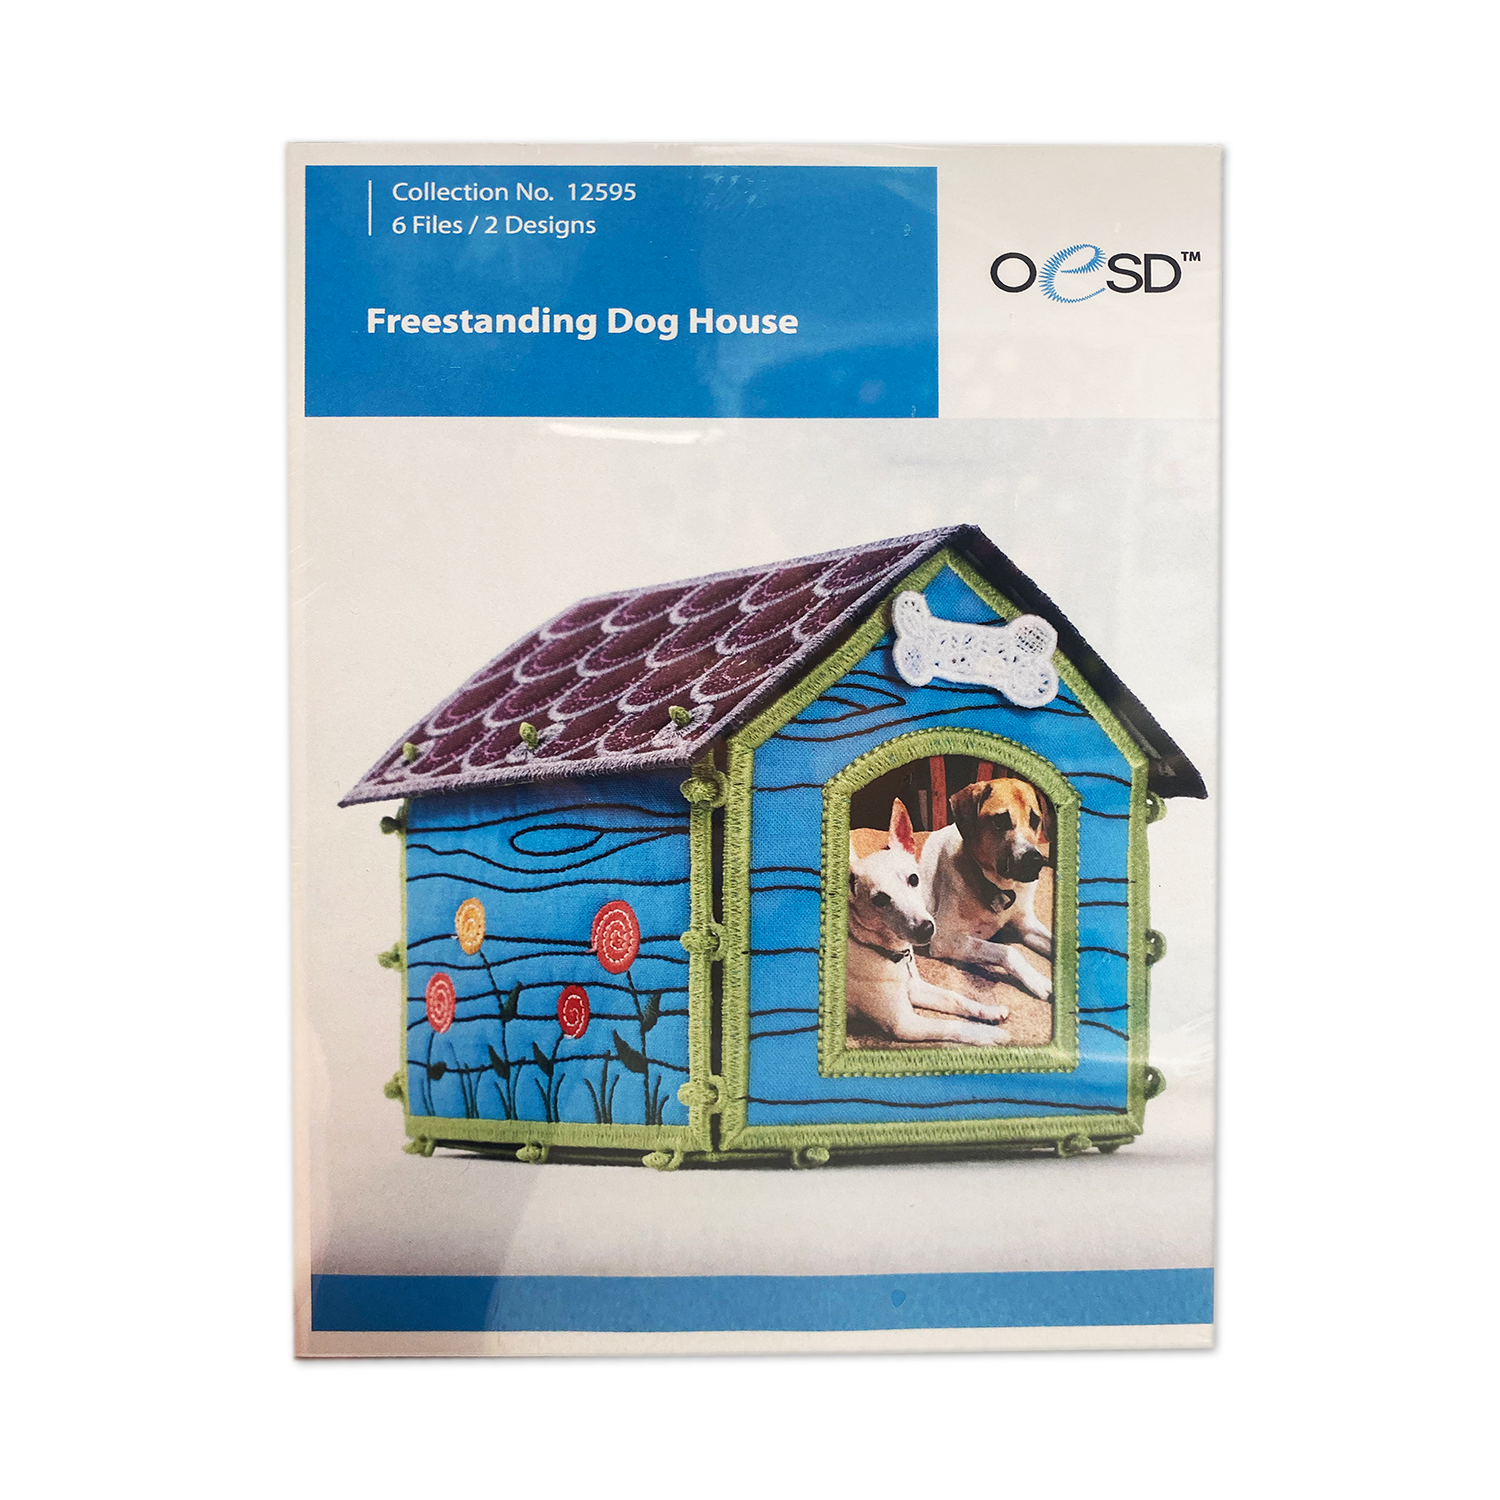 Freestanding Dog House - OESD